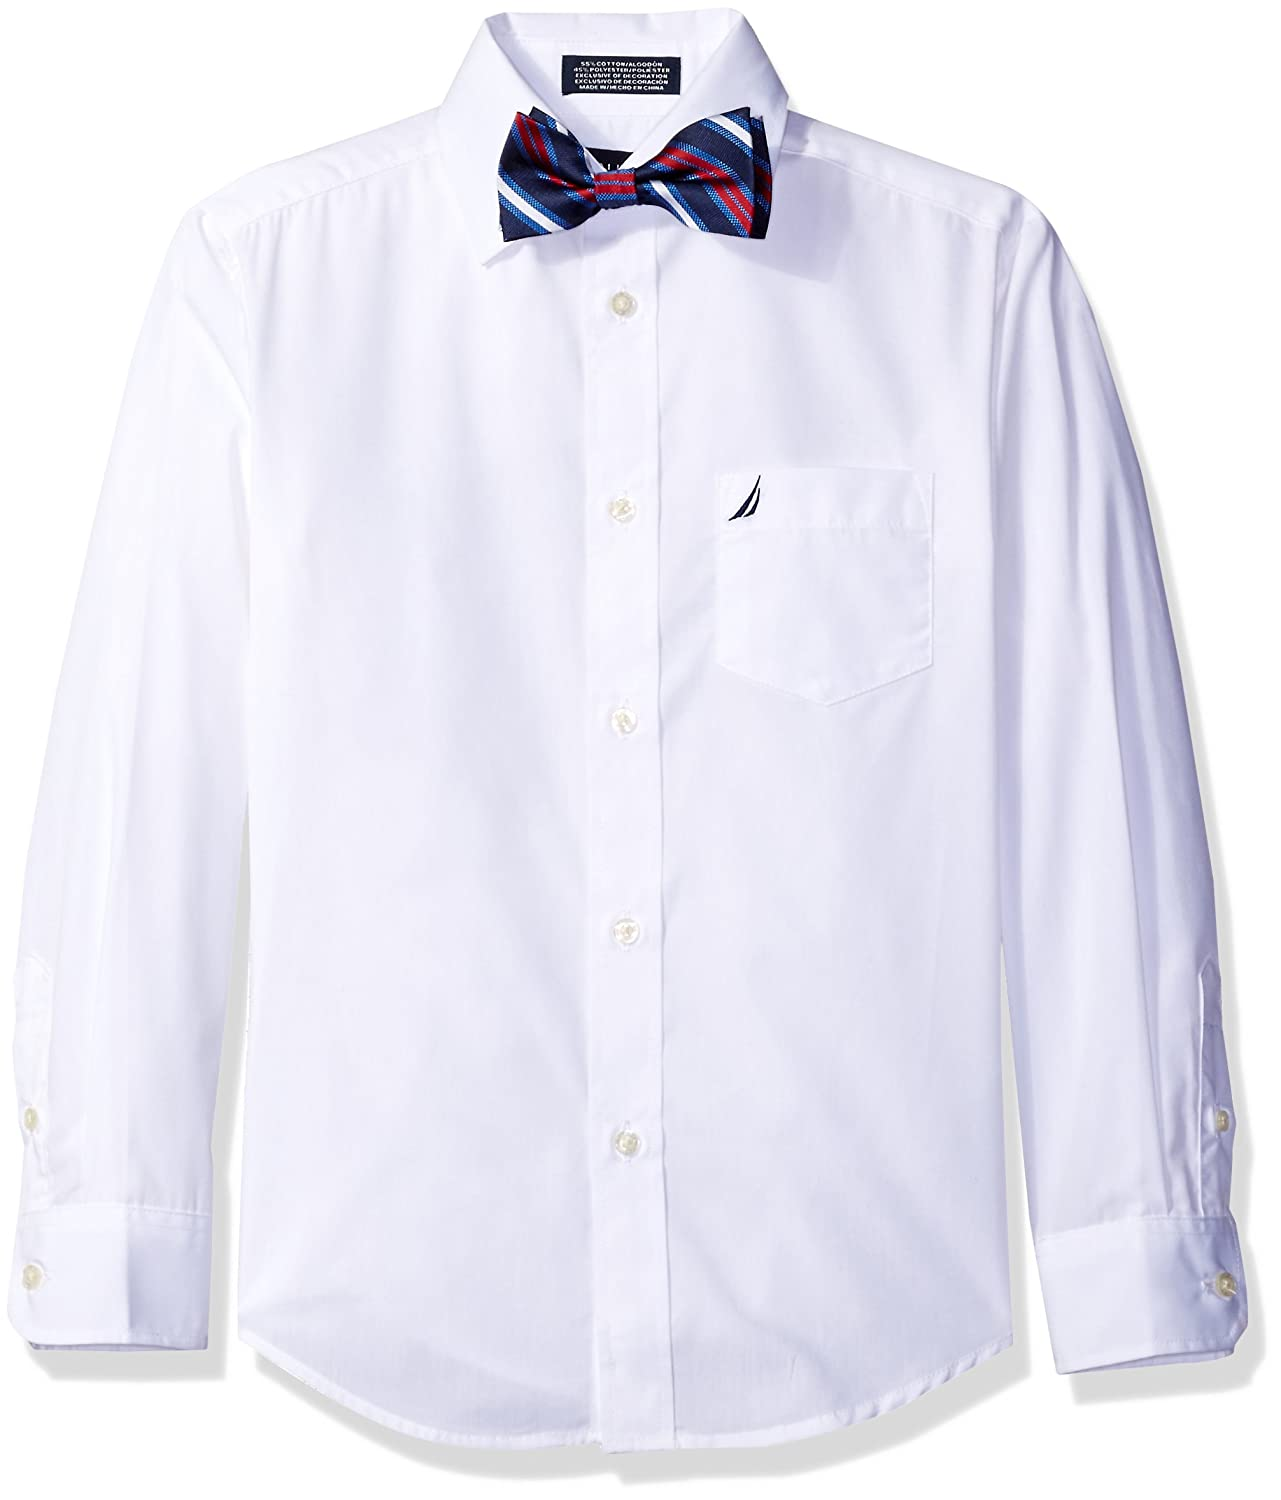 Nautica Boys' Long Sleeve Solid Shirt with Bow Tie N473096W